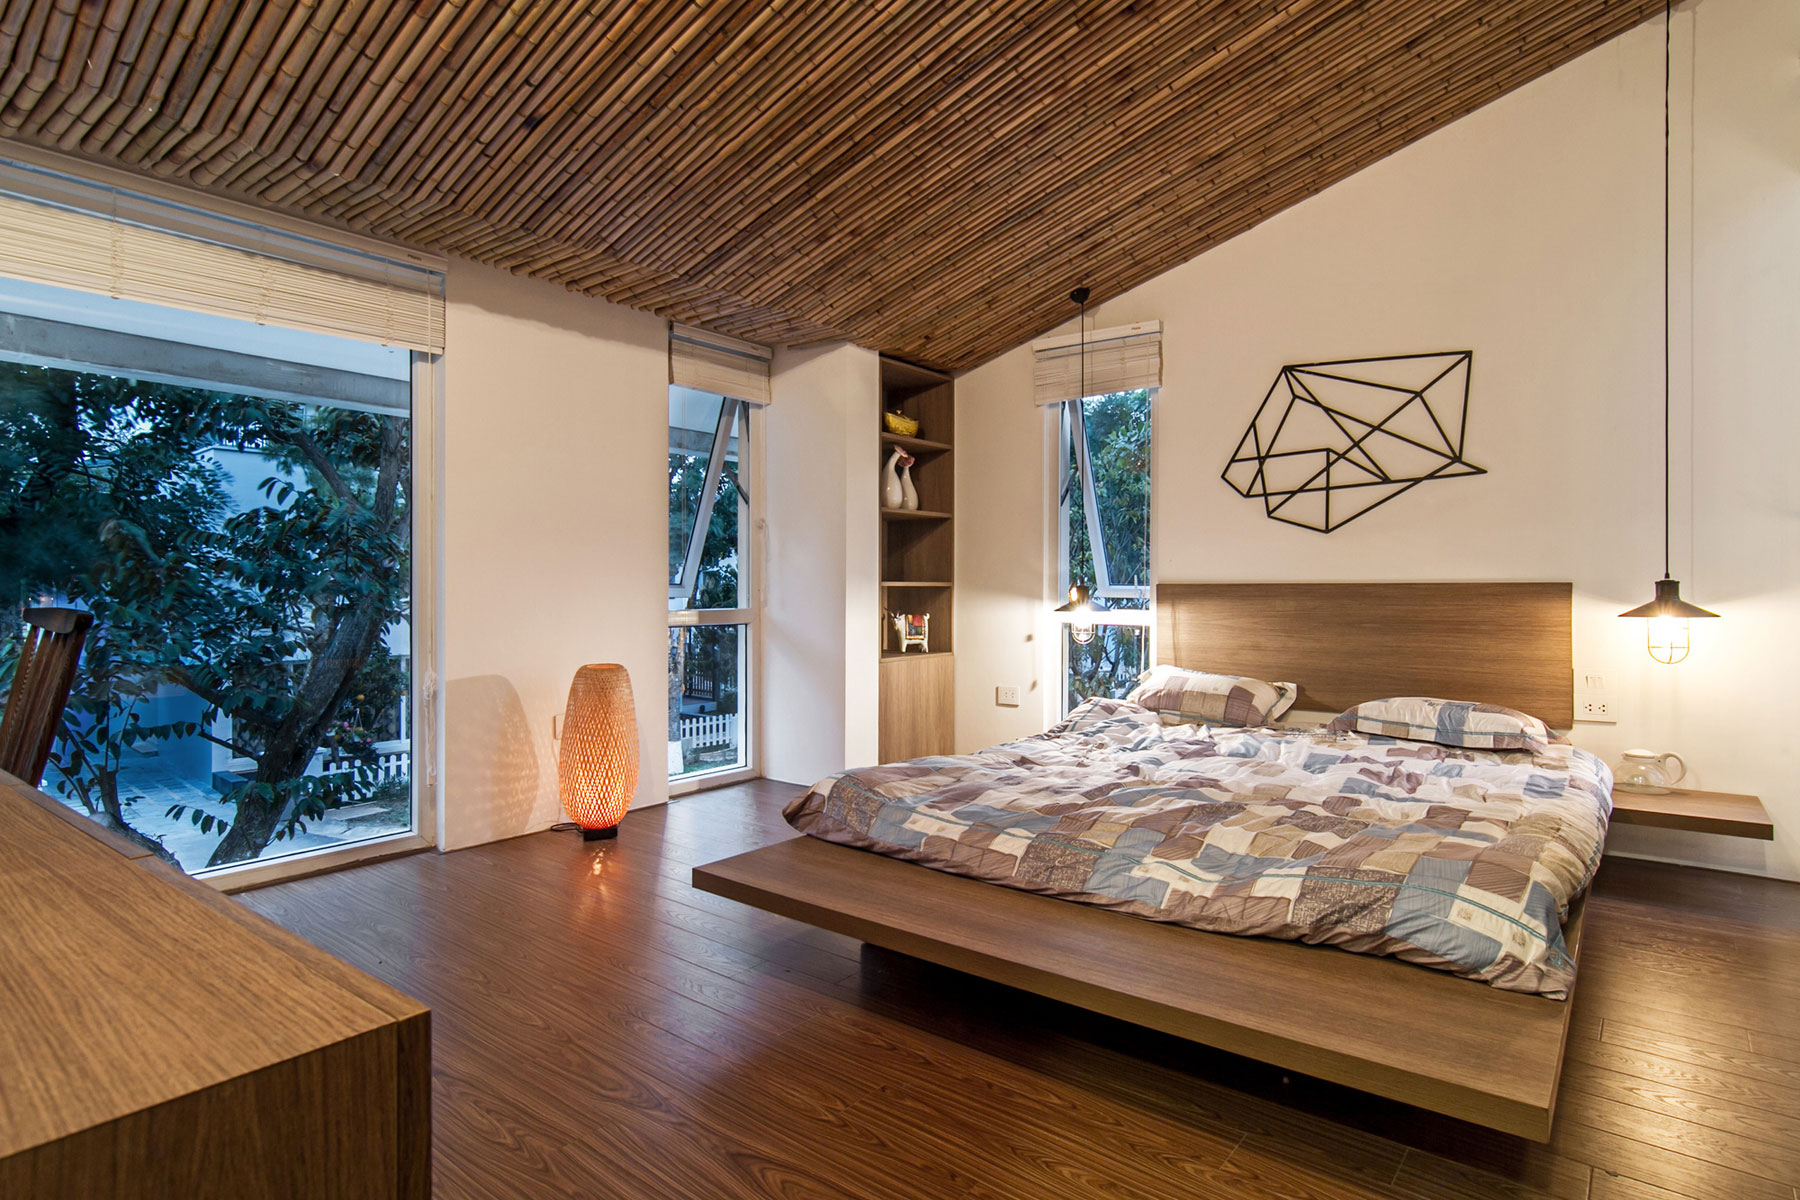 EPV Semi-Detached House Located in Ecopark Green Urban Area, Vietnam by AHL architects associates-21